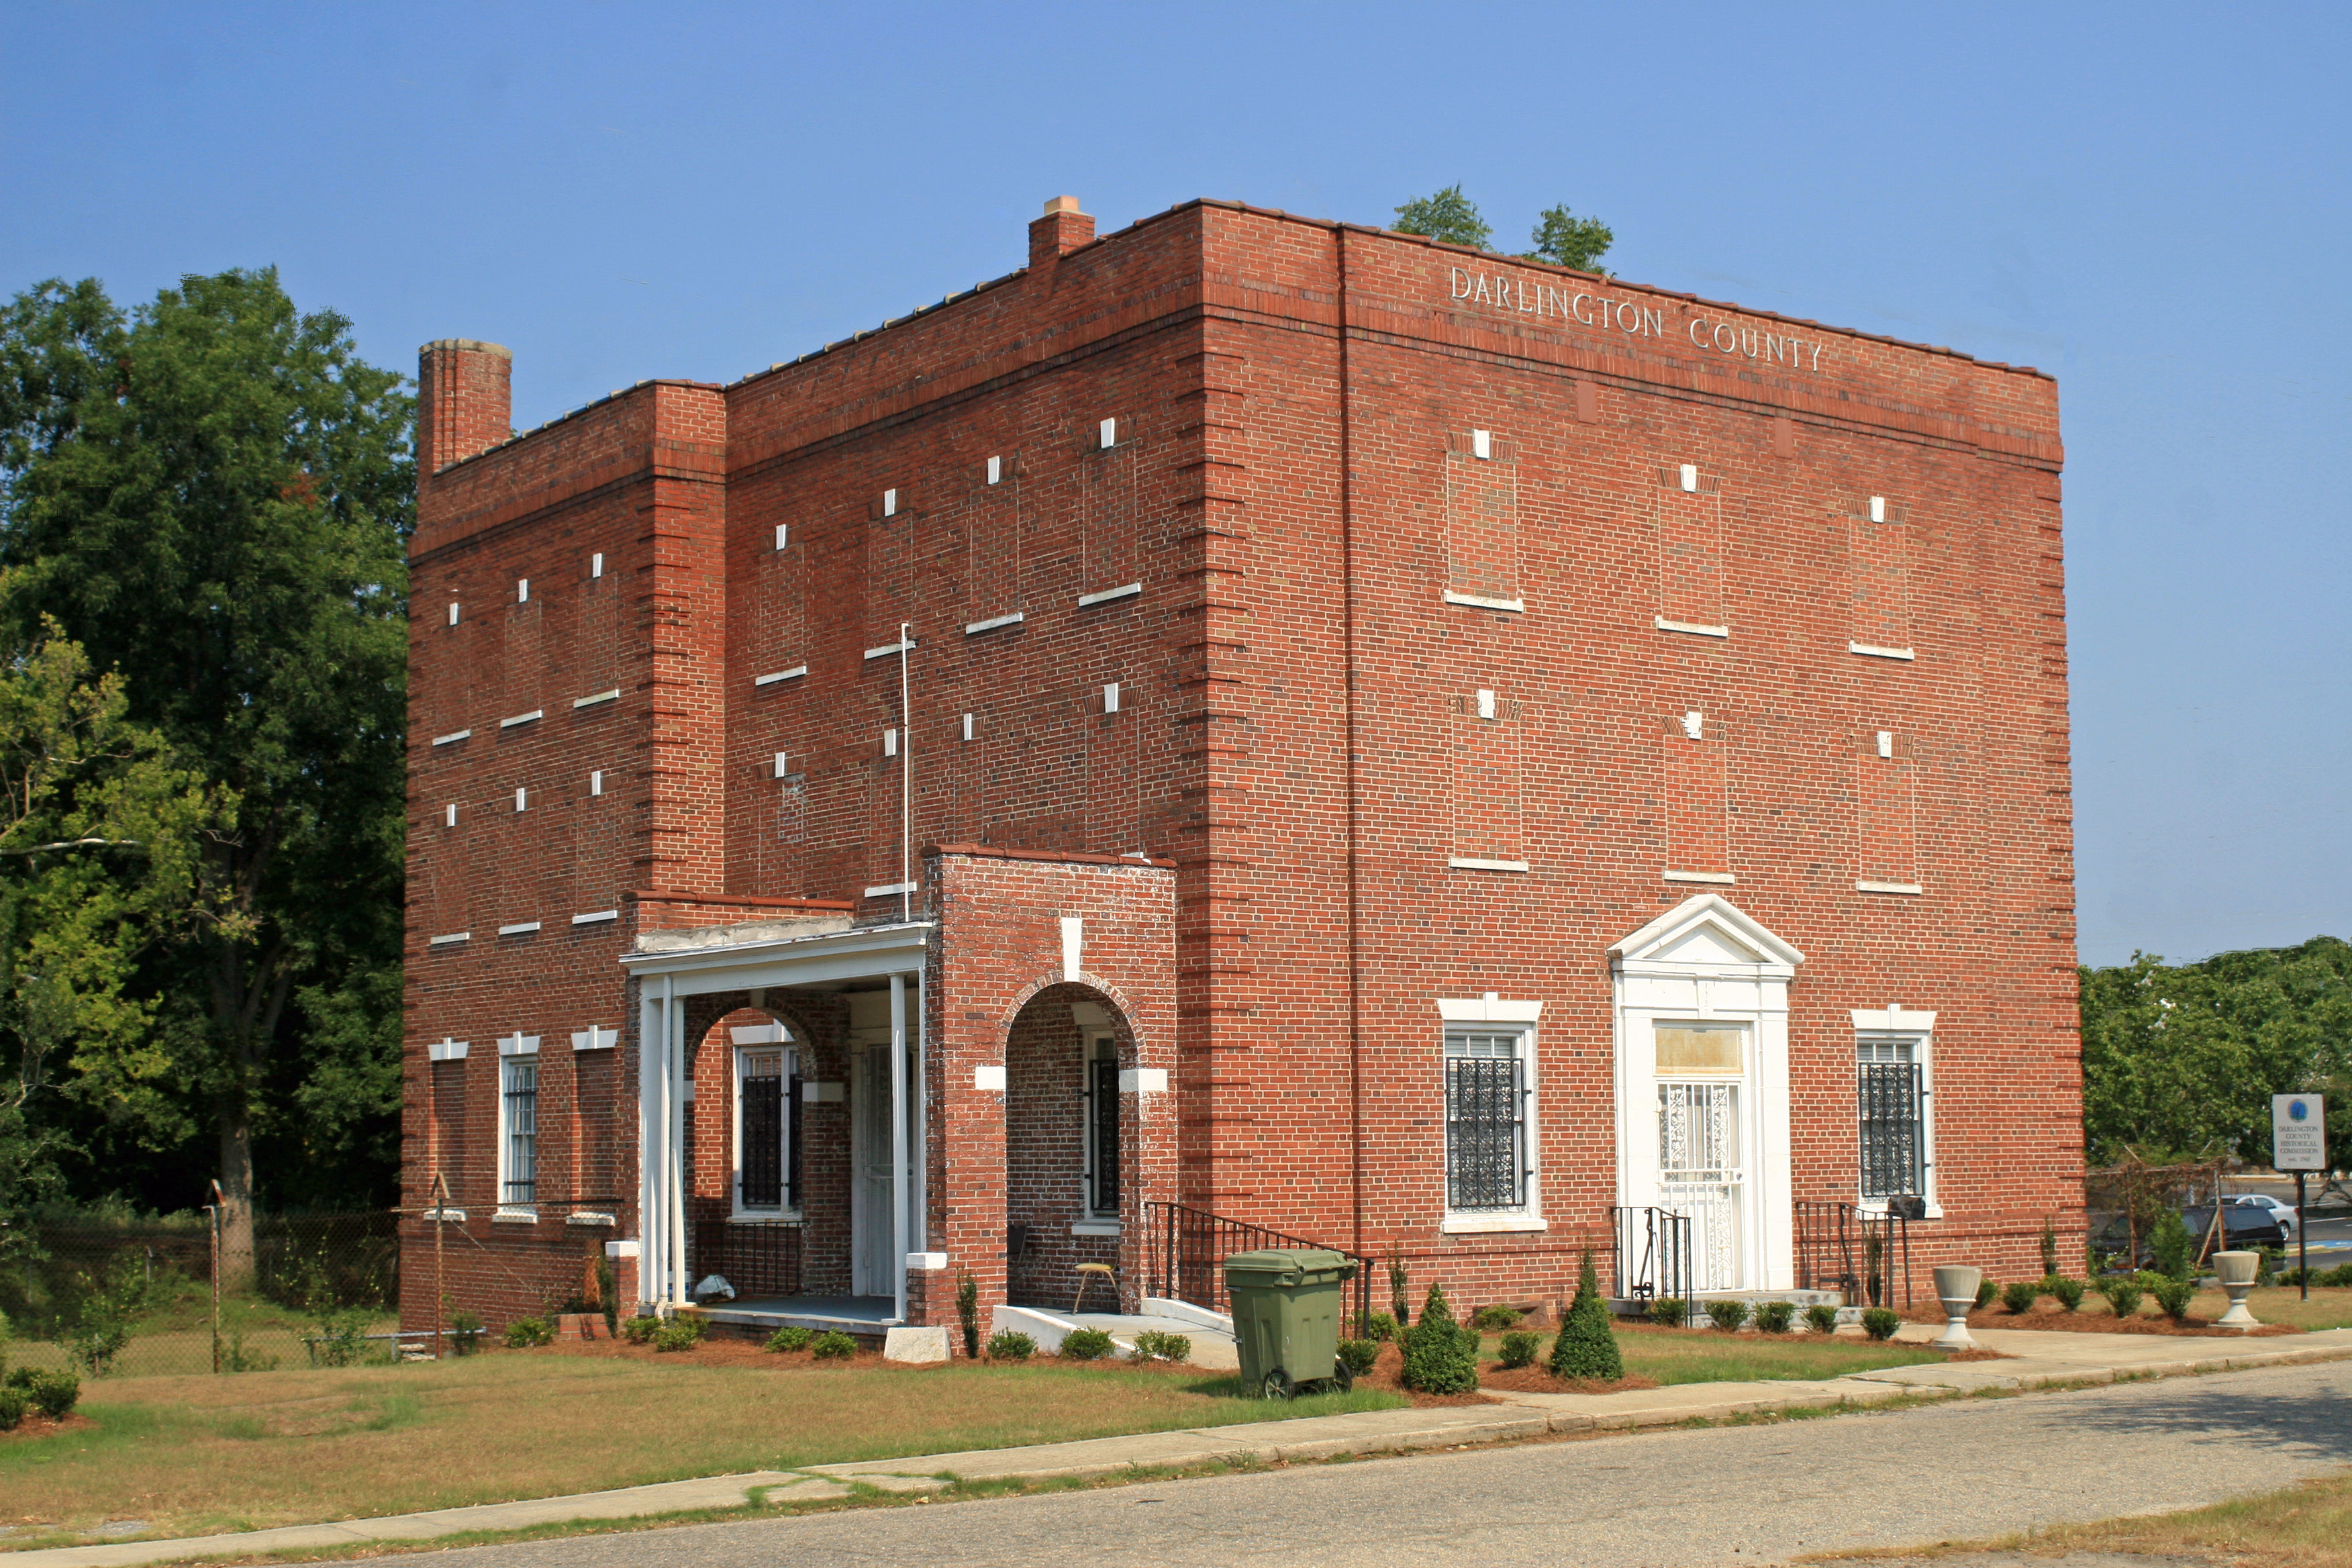 The Darlington County Historical Commisison